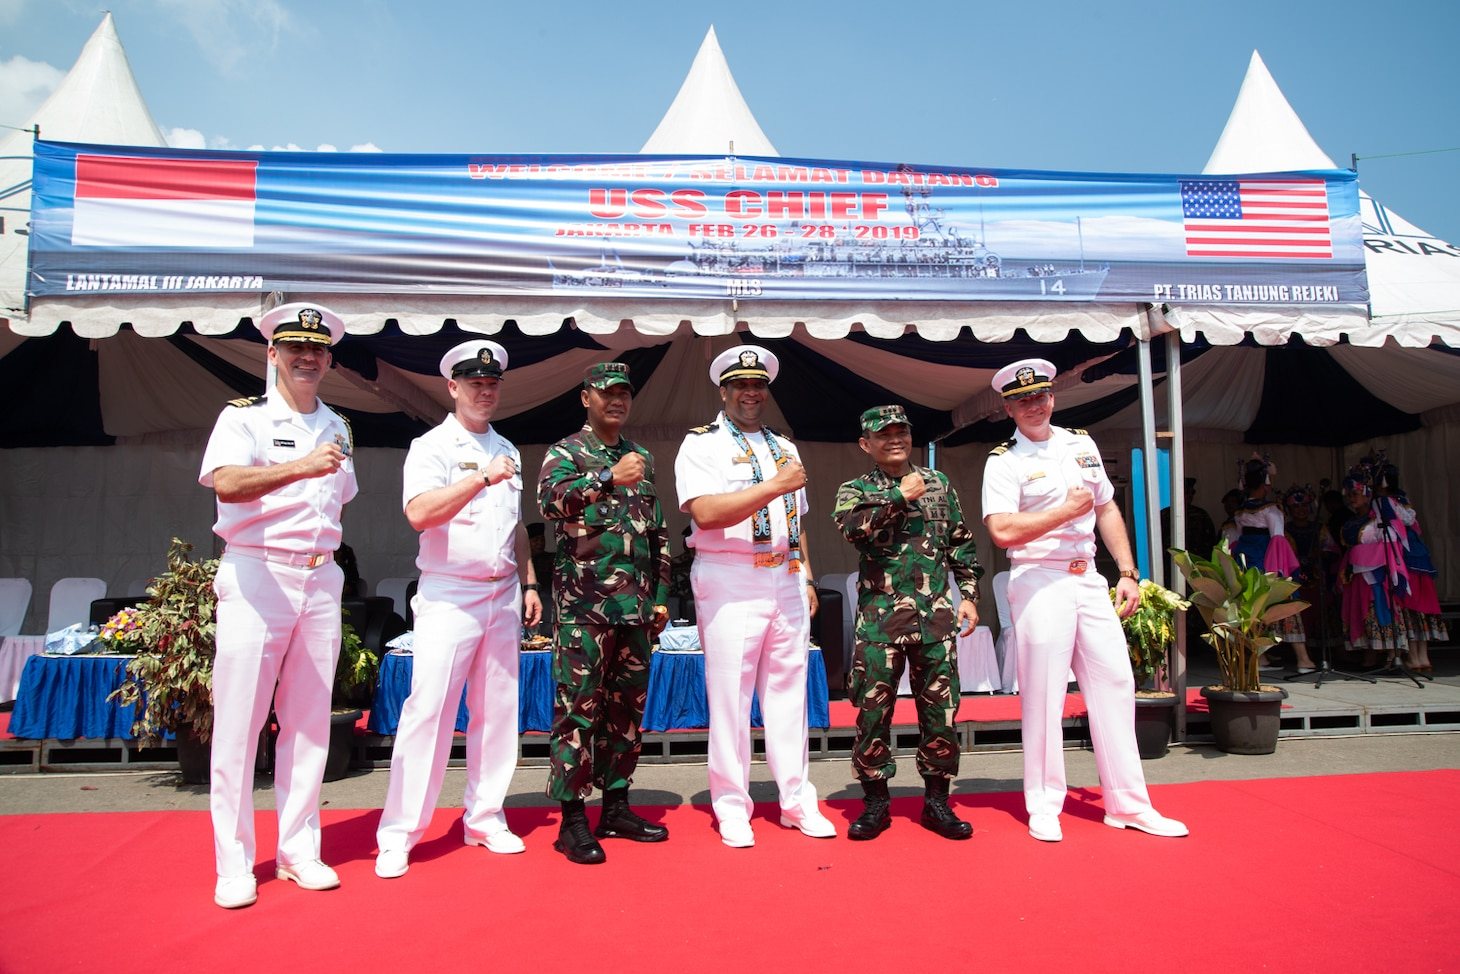 Chief is visiting Jakarta while operating in U.S. 7th Fleet to work with their Indonesian Navy (TNI-AL) counterparts to strengthen regional security and stability, and enhance interoperability.